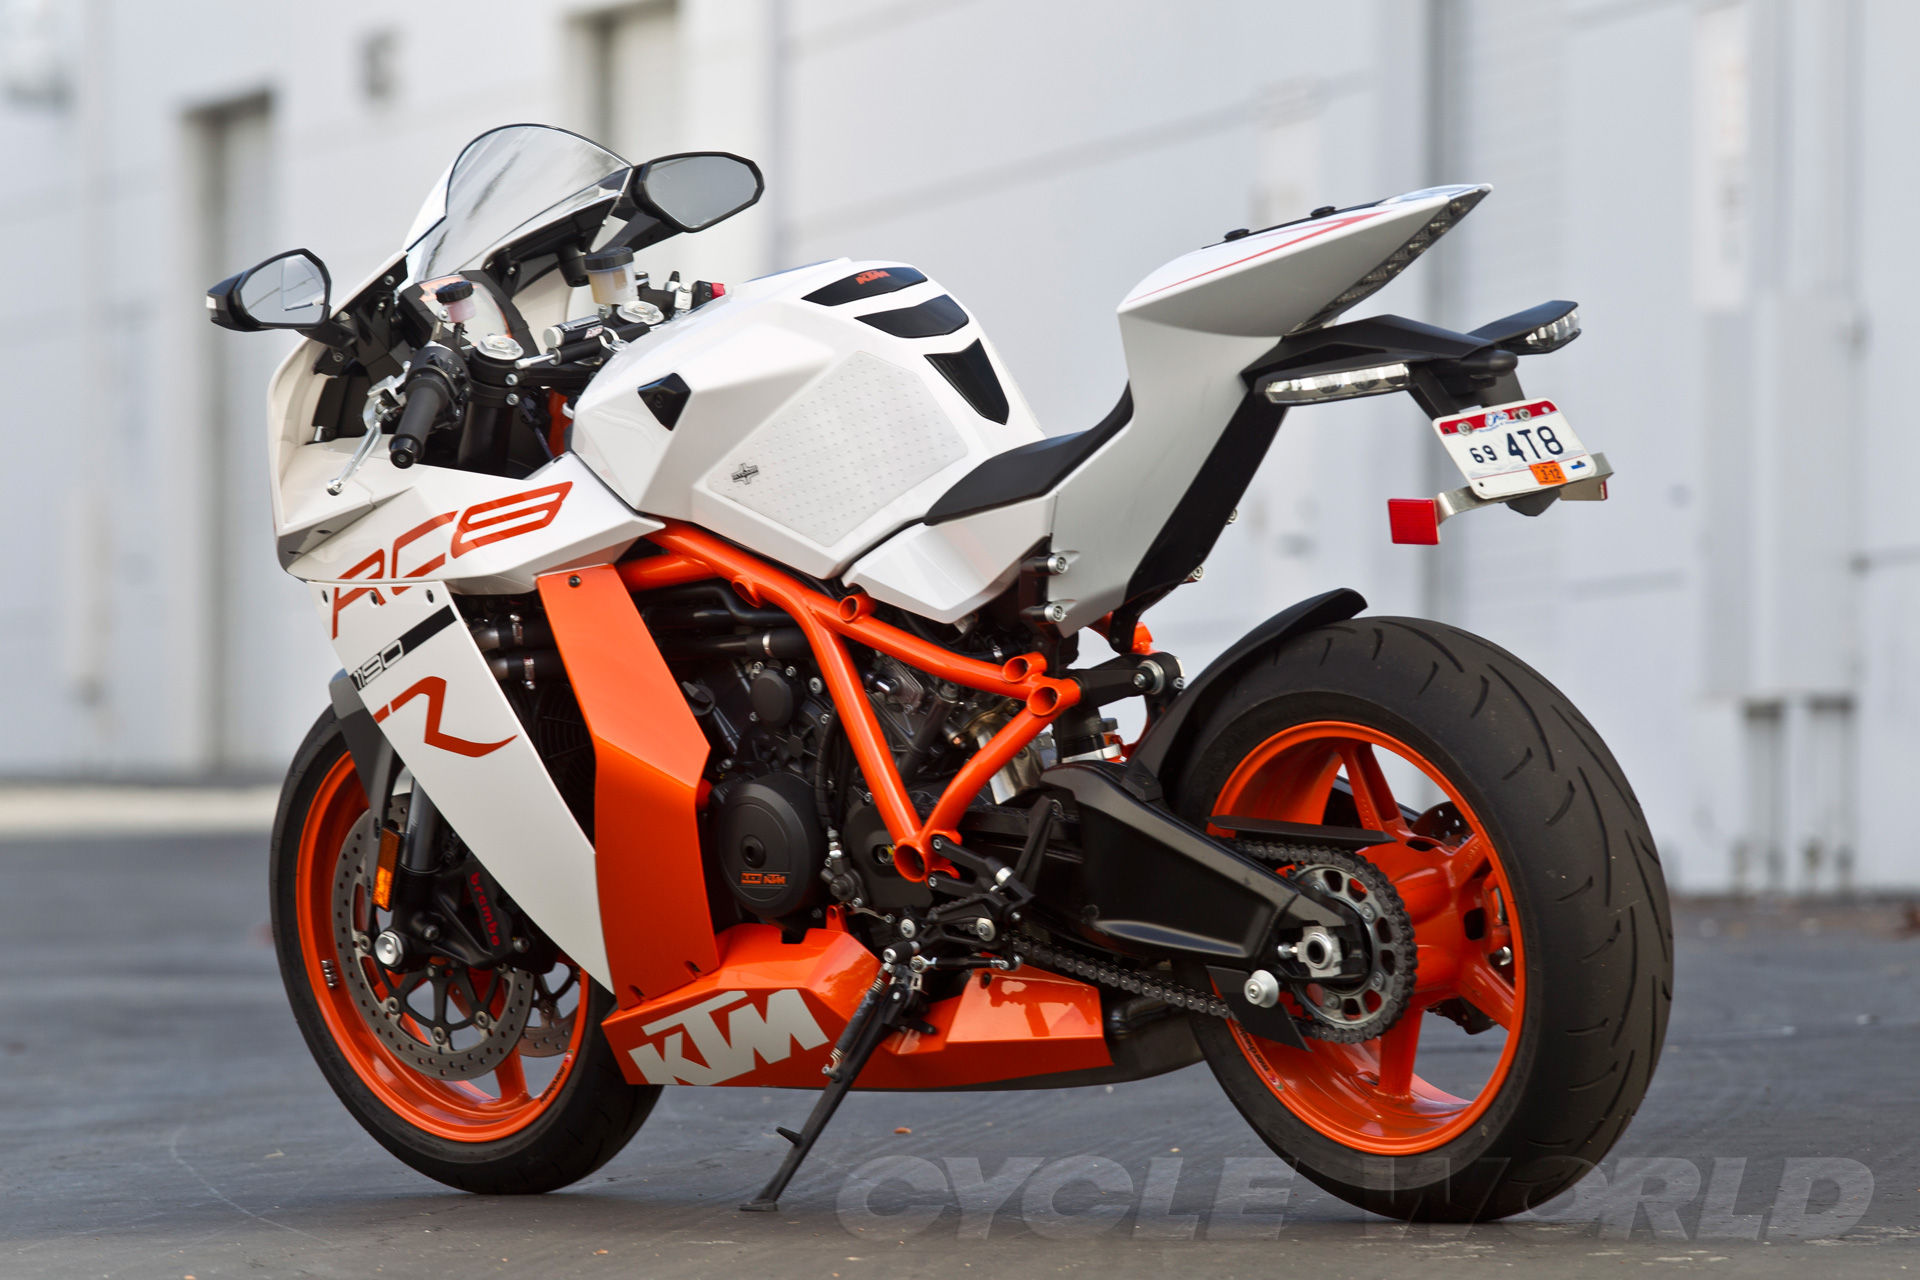 hight resolution of ktm rc8 r ten bikes with soul and character cycle world feature cycle world